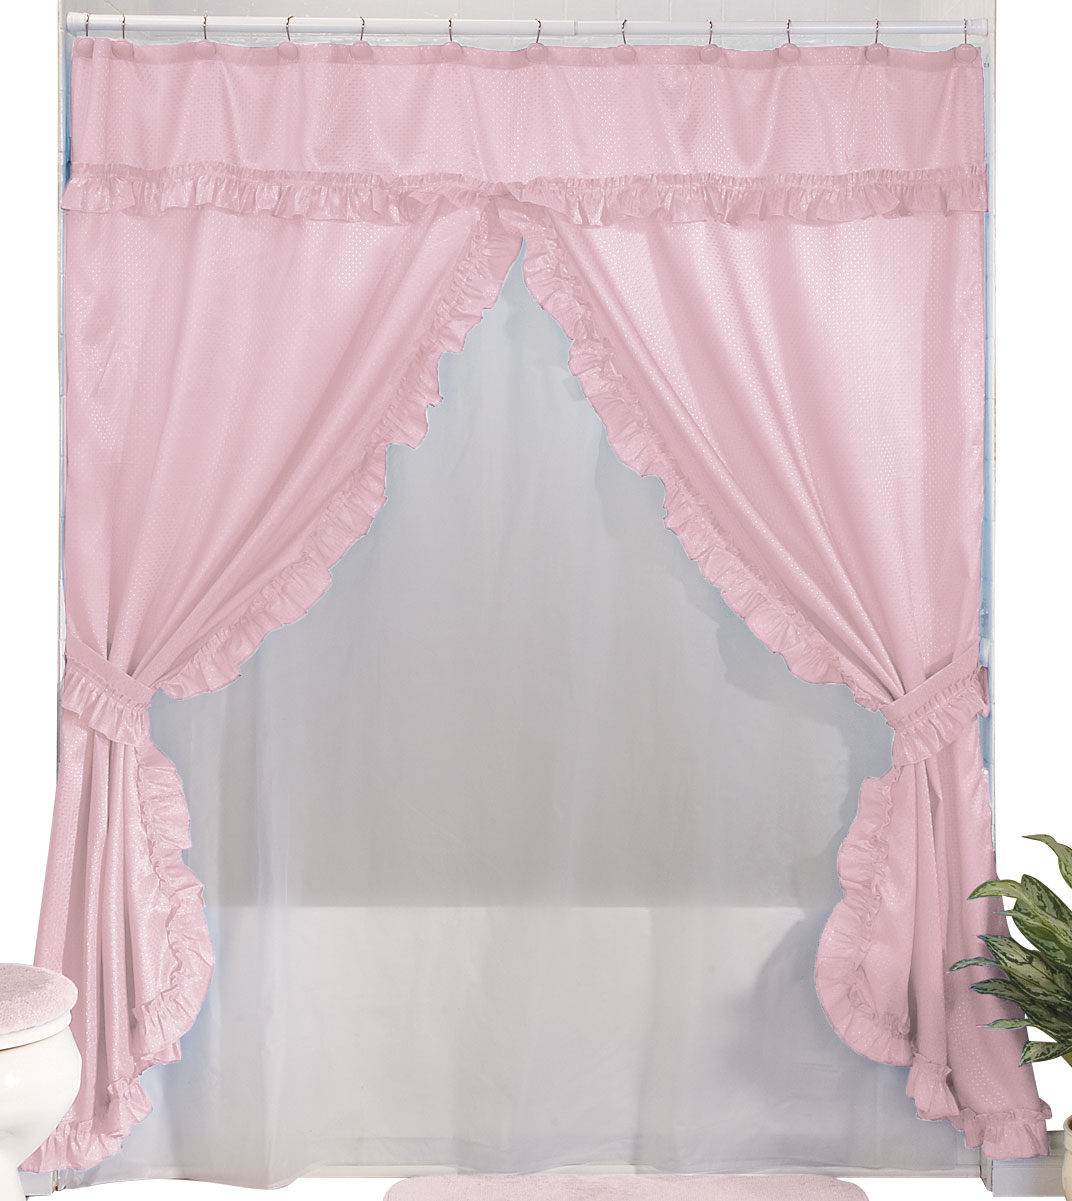 Double Swag Shower Curtain Rose